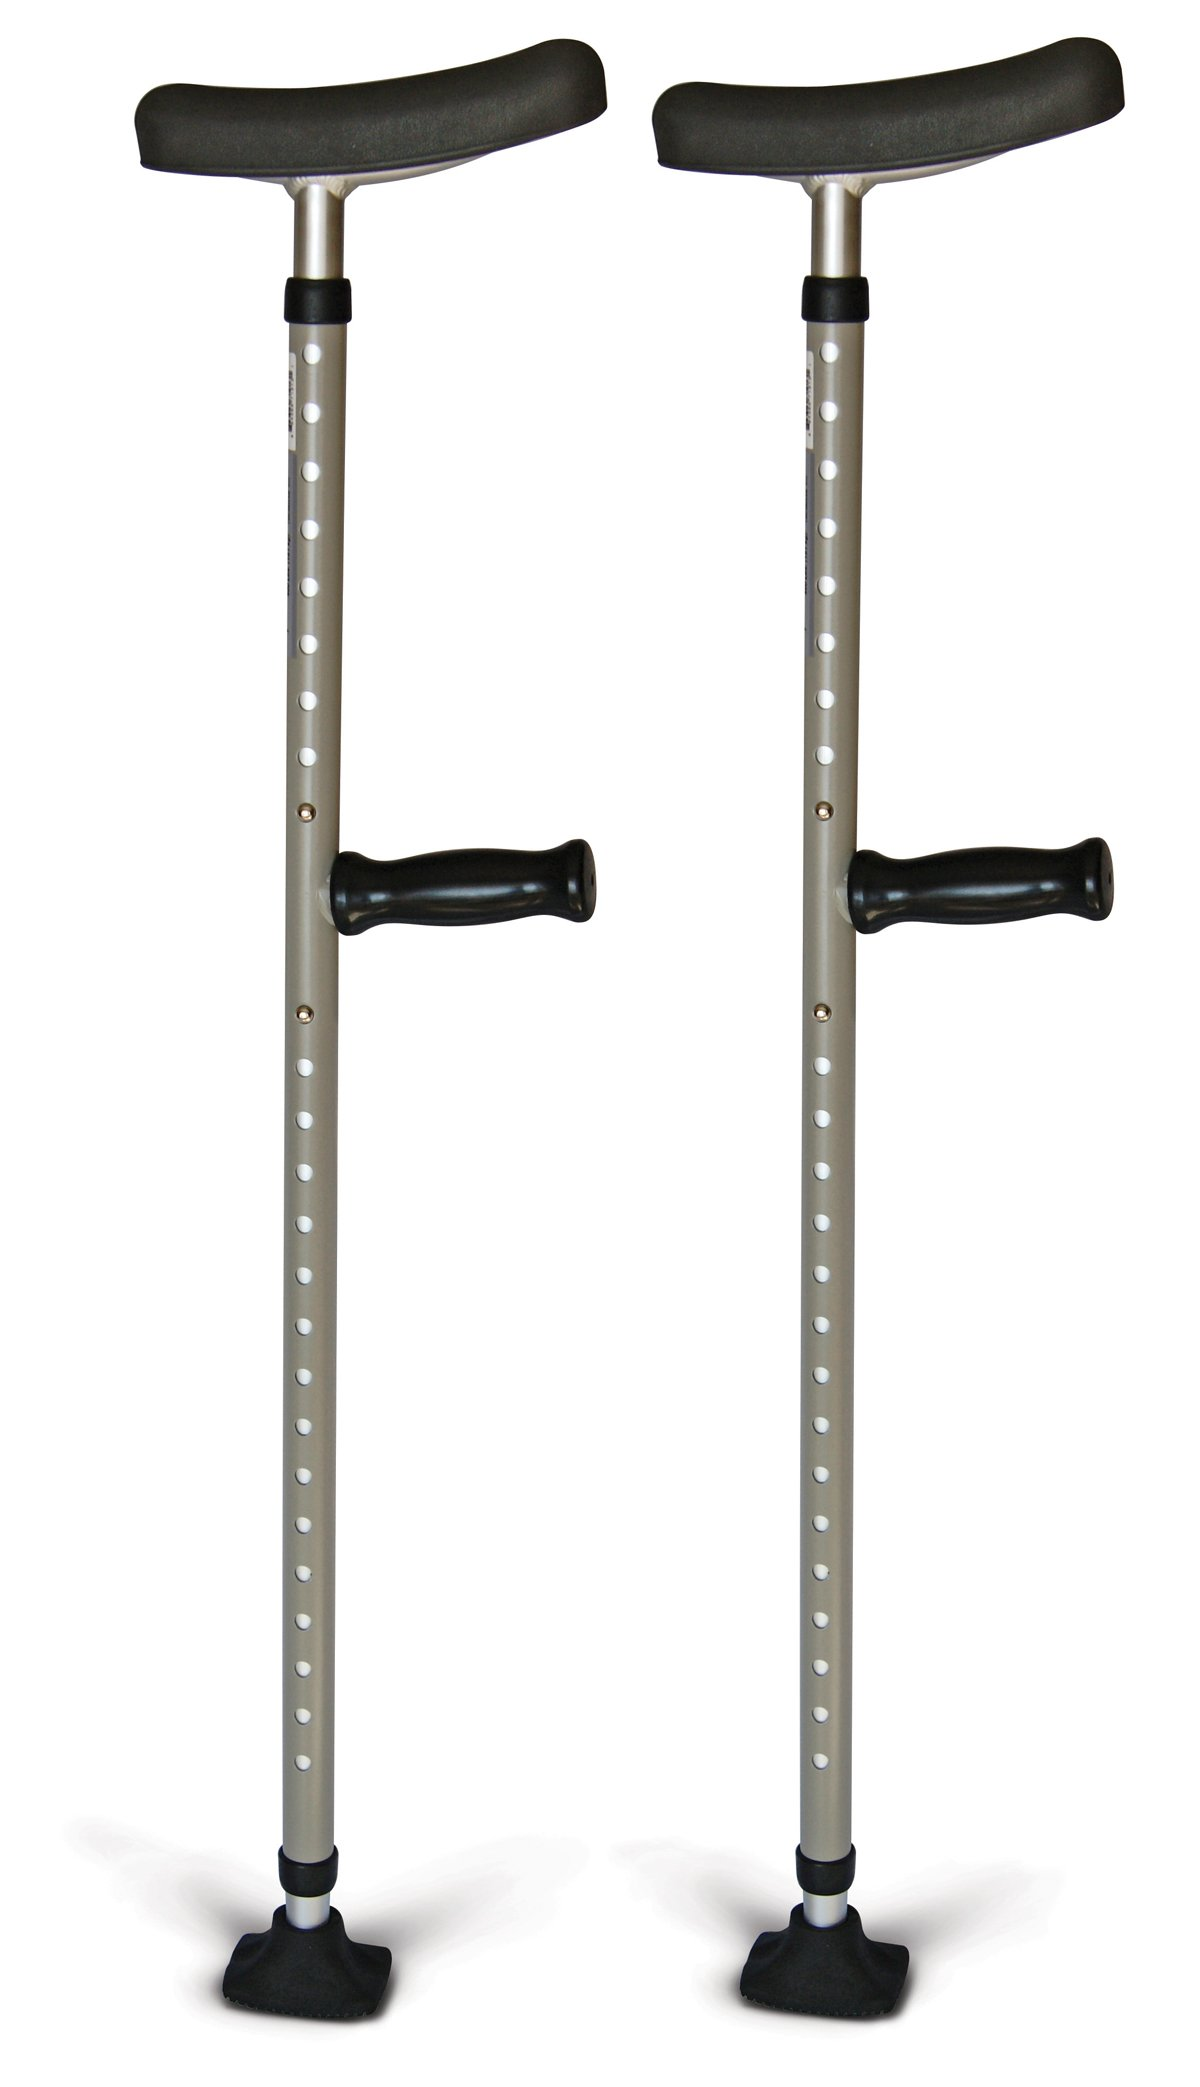 Medline MDS80542 Single Tube Crutches, Pewter (Pack of 8)